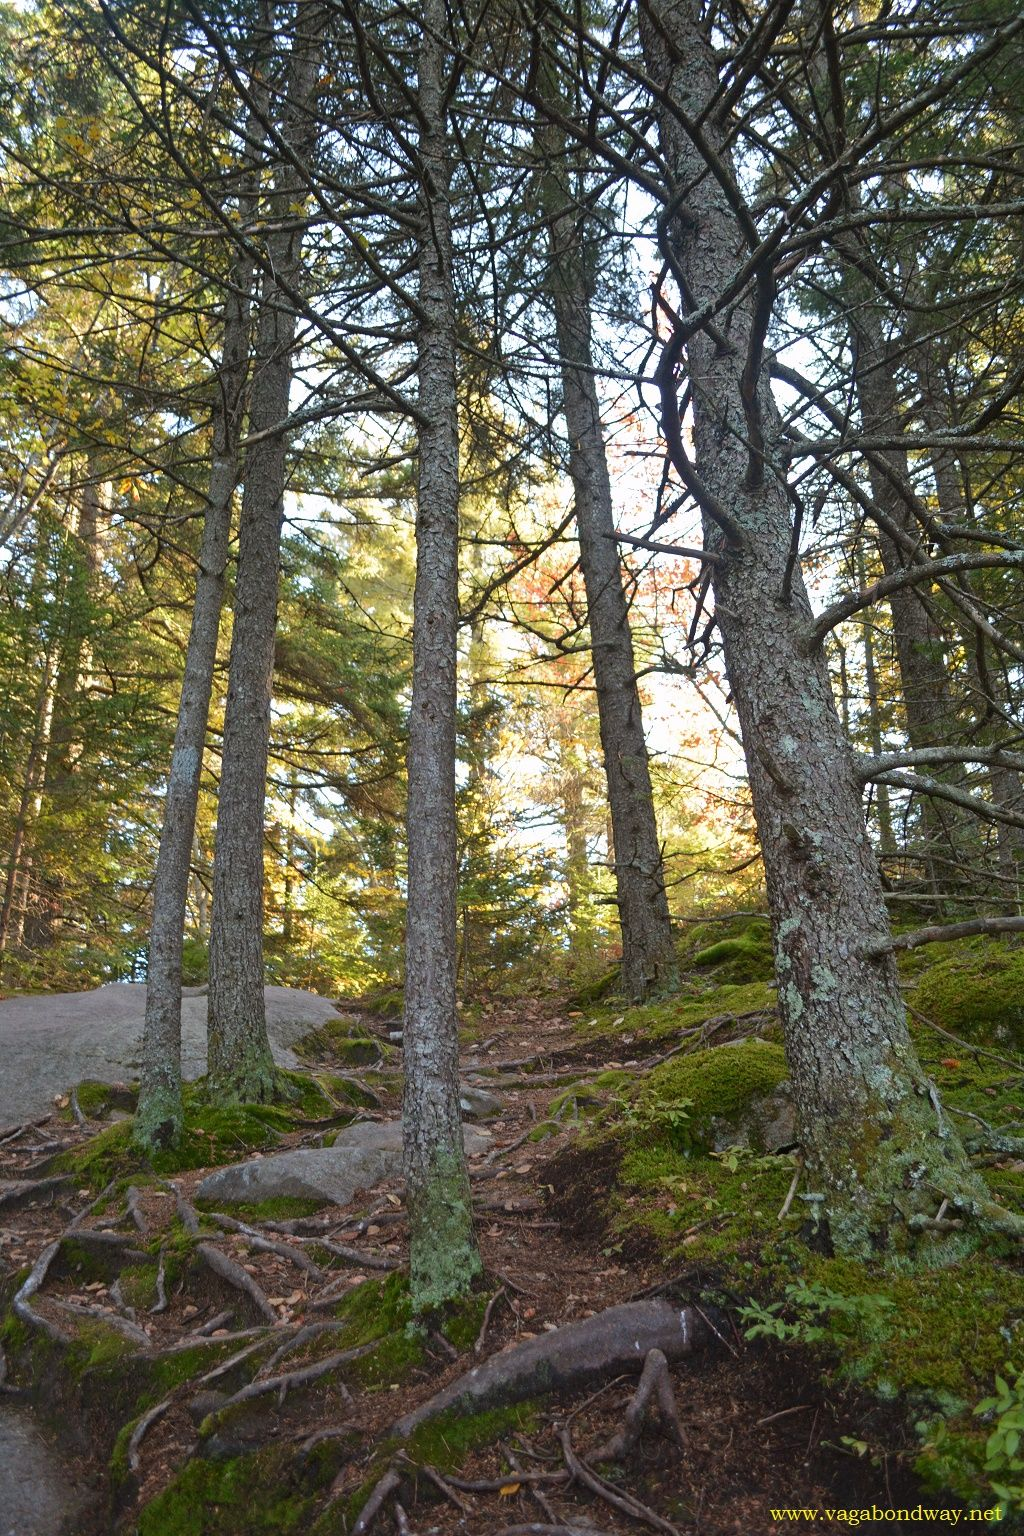 Looking at the forest through the trees. Love #hiking #vtstateparks #owlshead #getoutside #nature